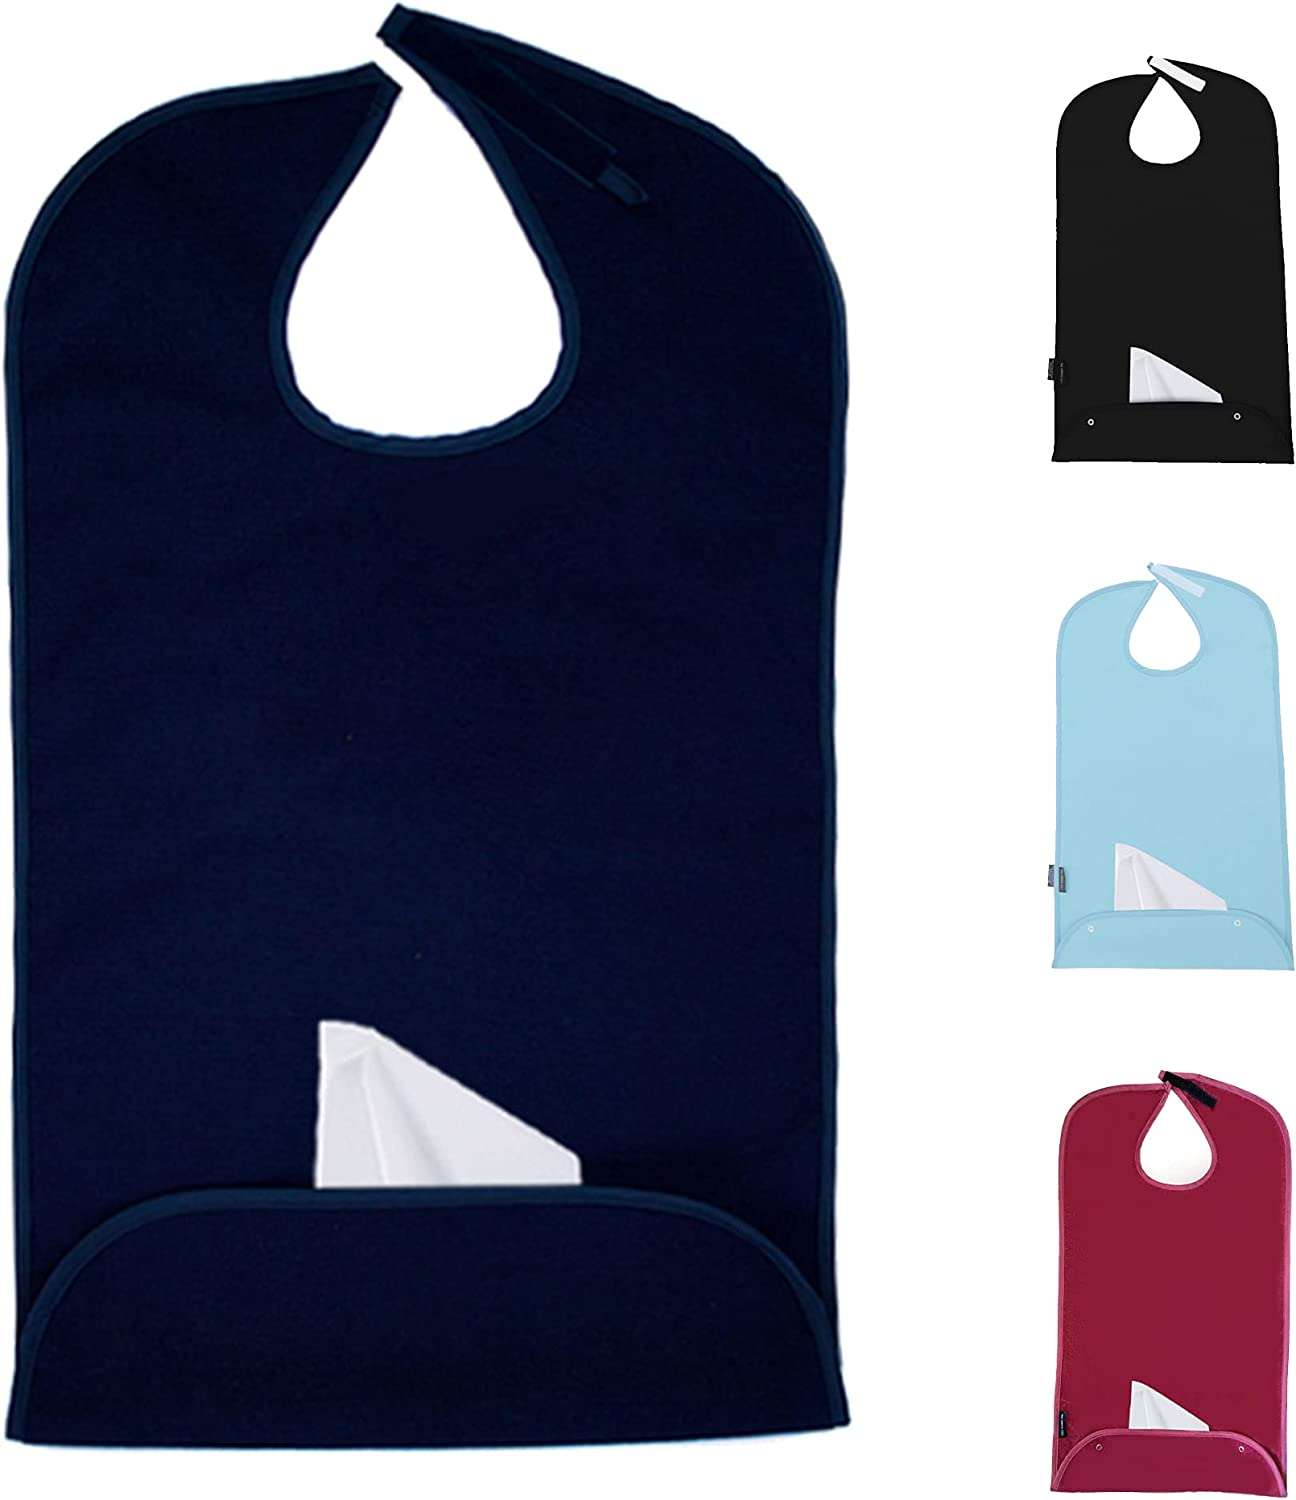 Classy Pal Outlet ☆ Free Shipping Adult 2021 autumn and winter new Bibs for Men Clothing Protectors Women